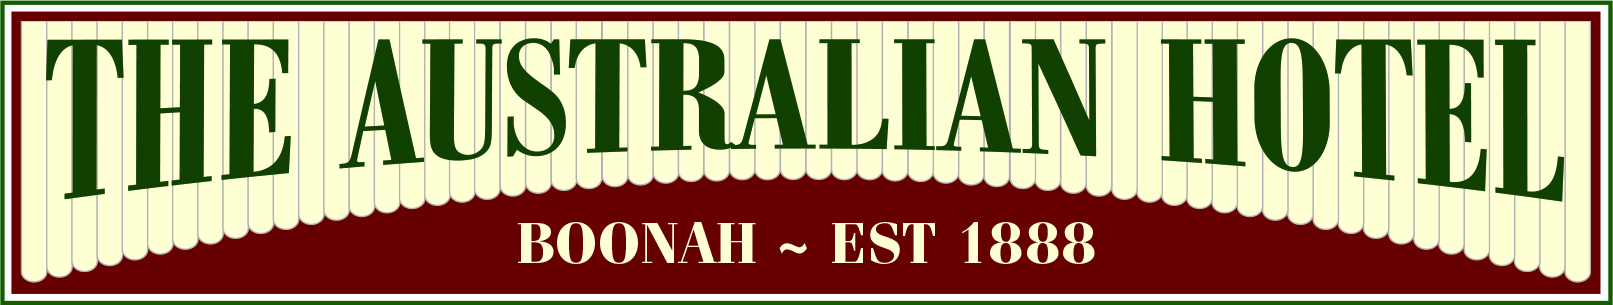 Australian Hotel - Boonah Logo and Images